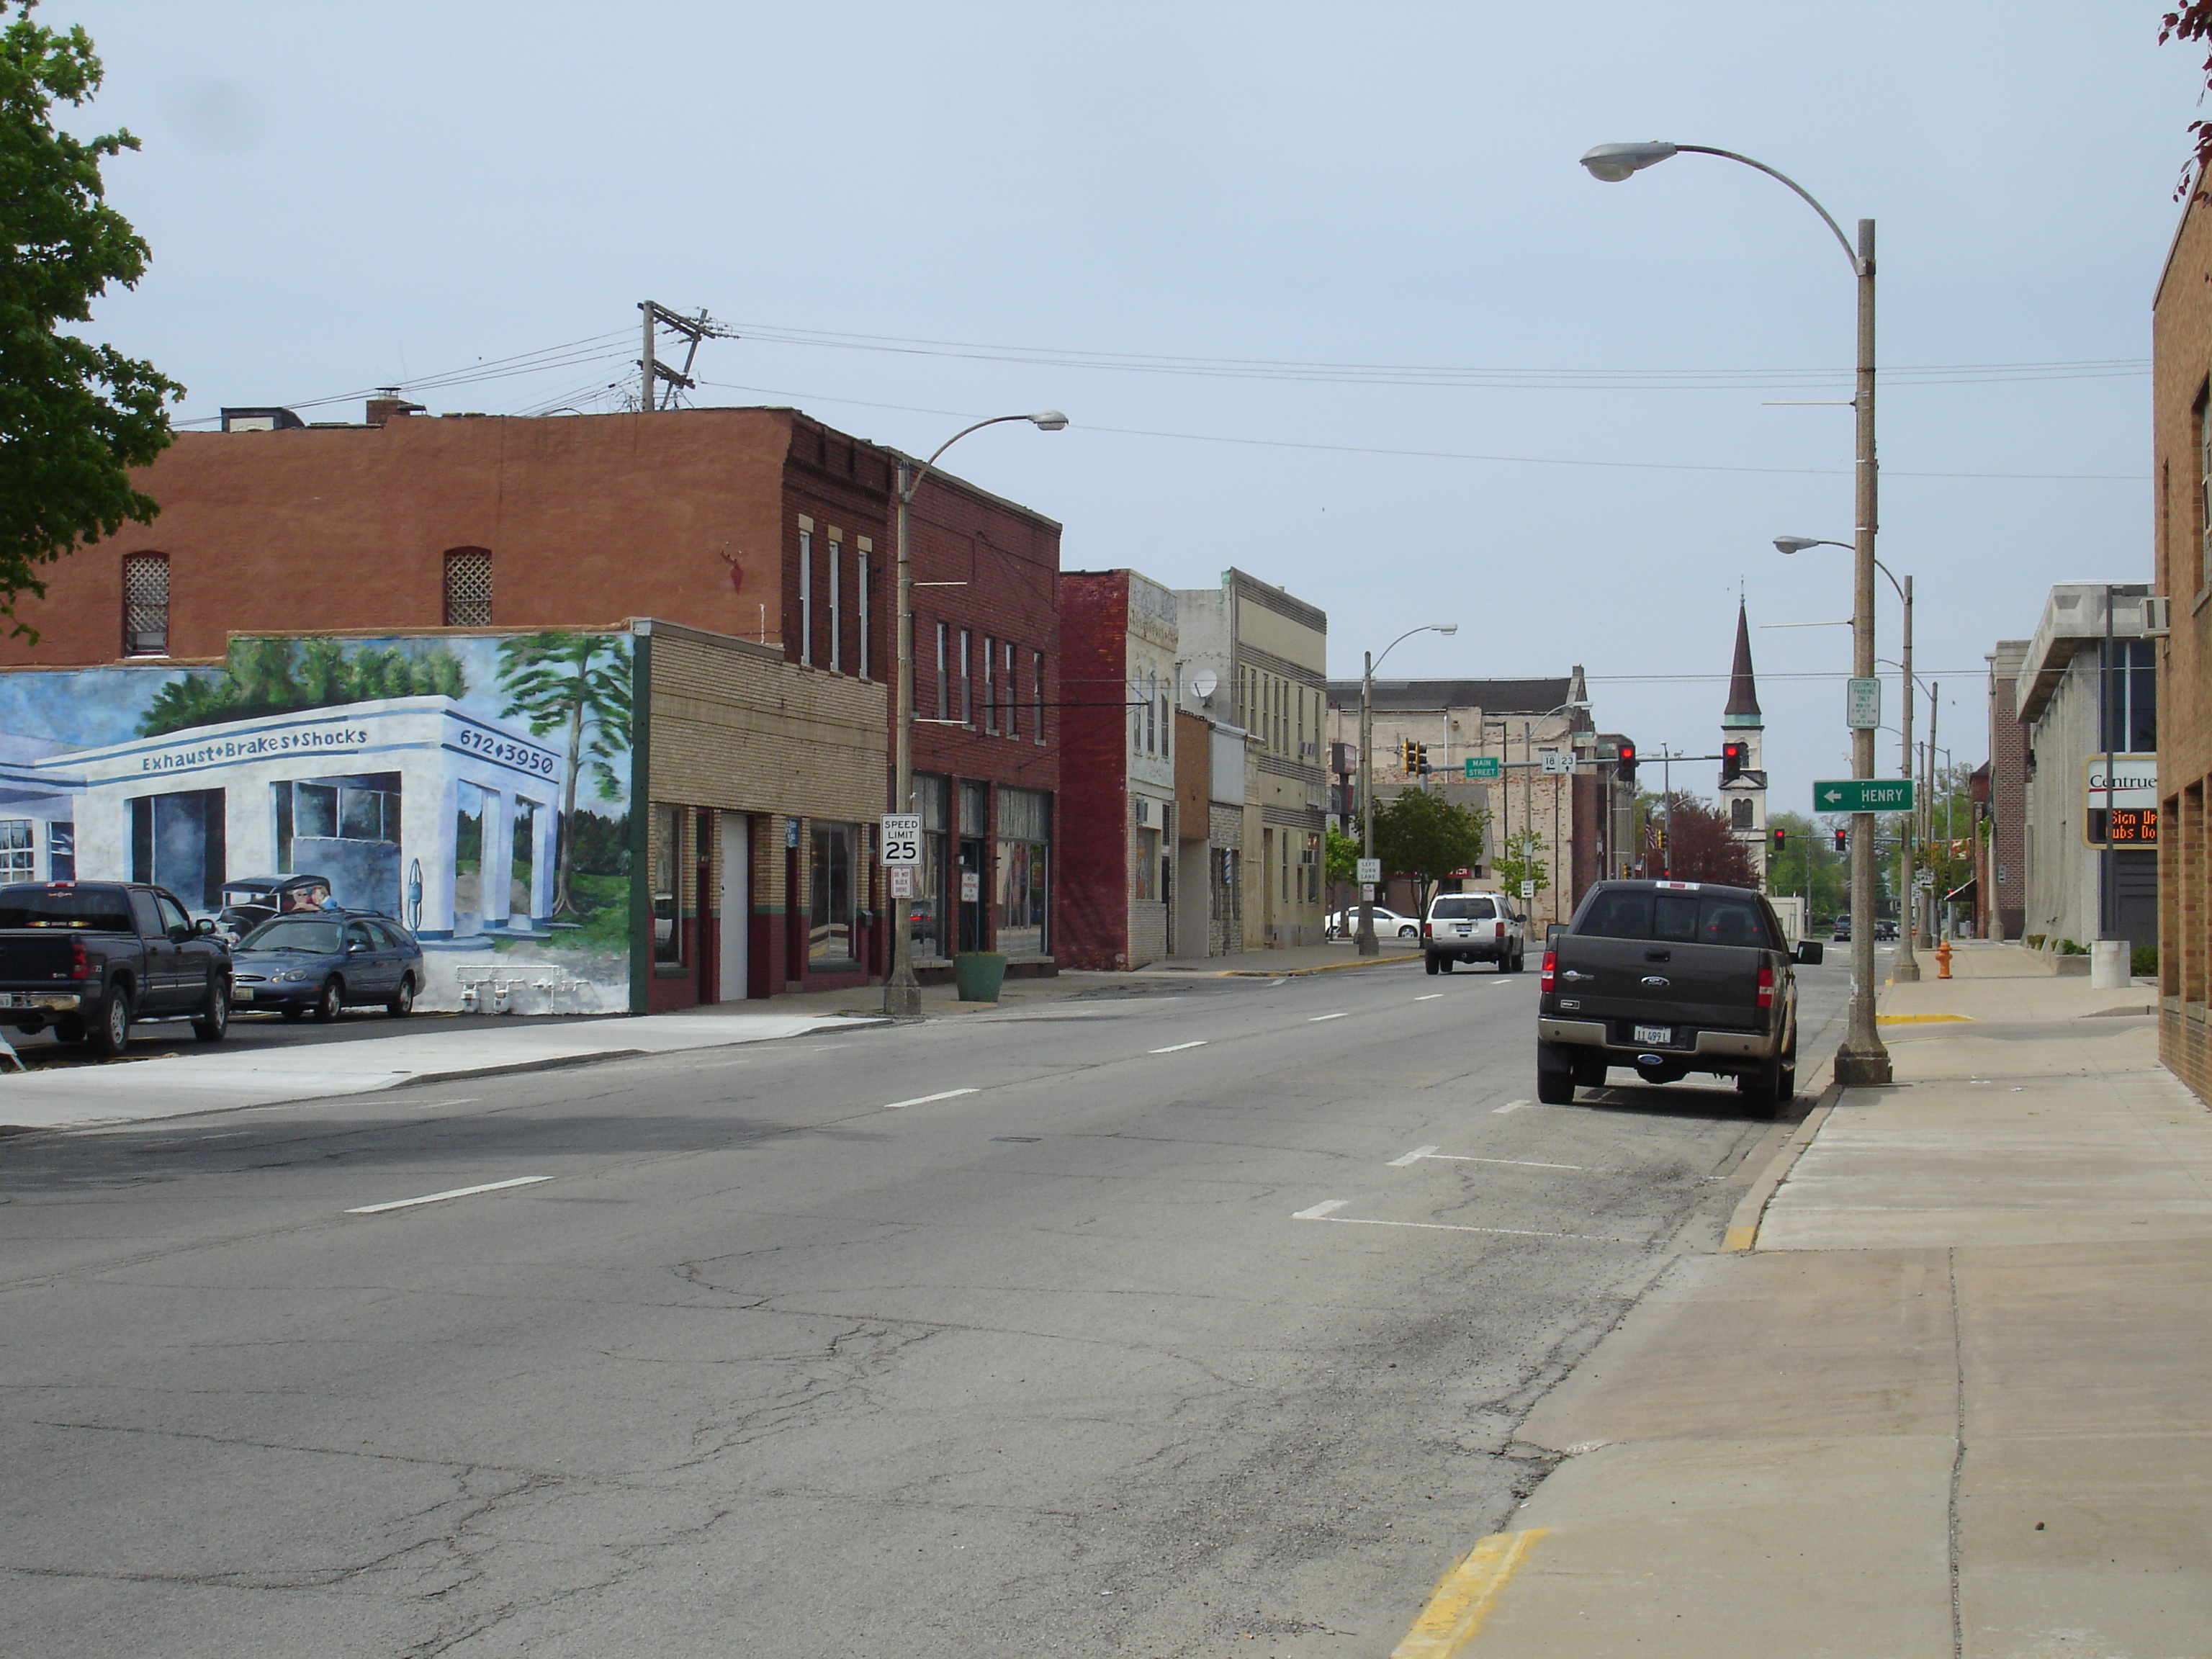 Buildings in downtown Streator